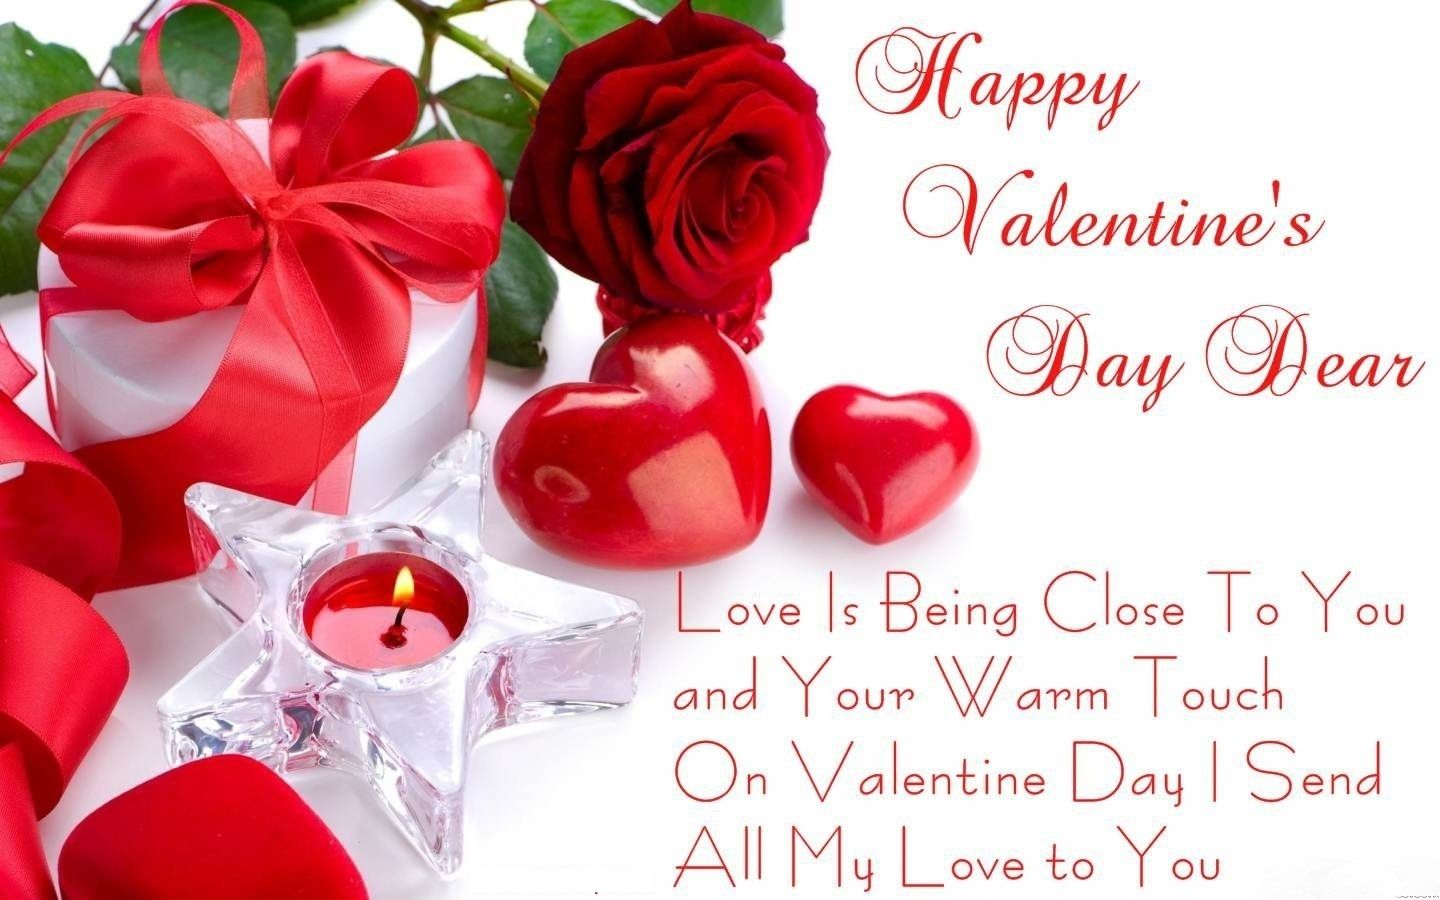 Advance 14 Feb Happy Valentine S Day Whatsapp Dp Images Wallpapers 2016 Happy Valentines Day Wishes Valentines Day Messages Happy Valentines Day Images